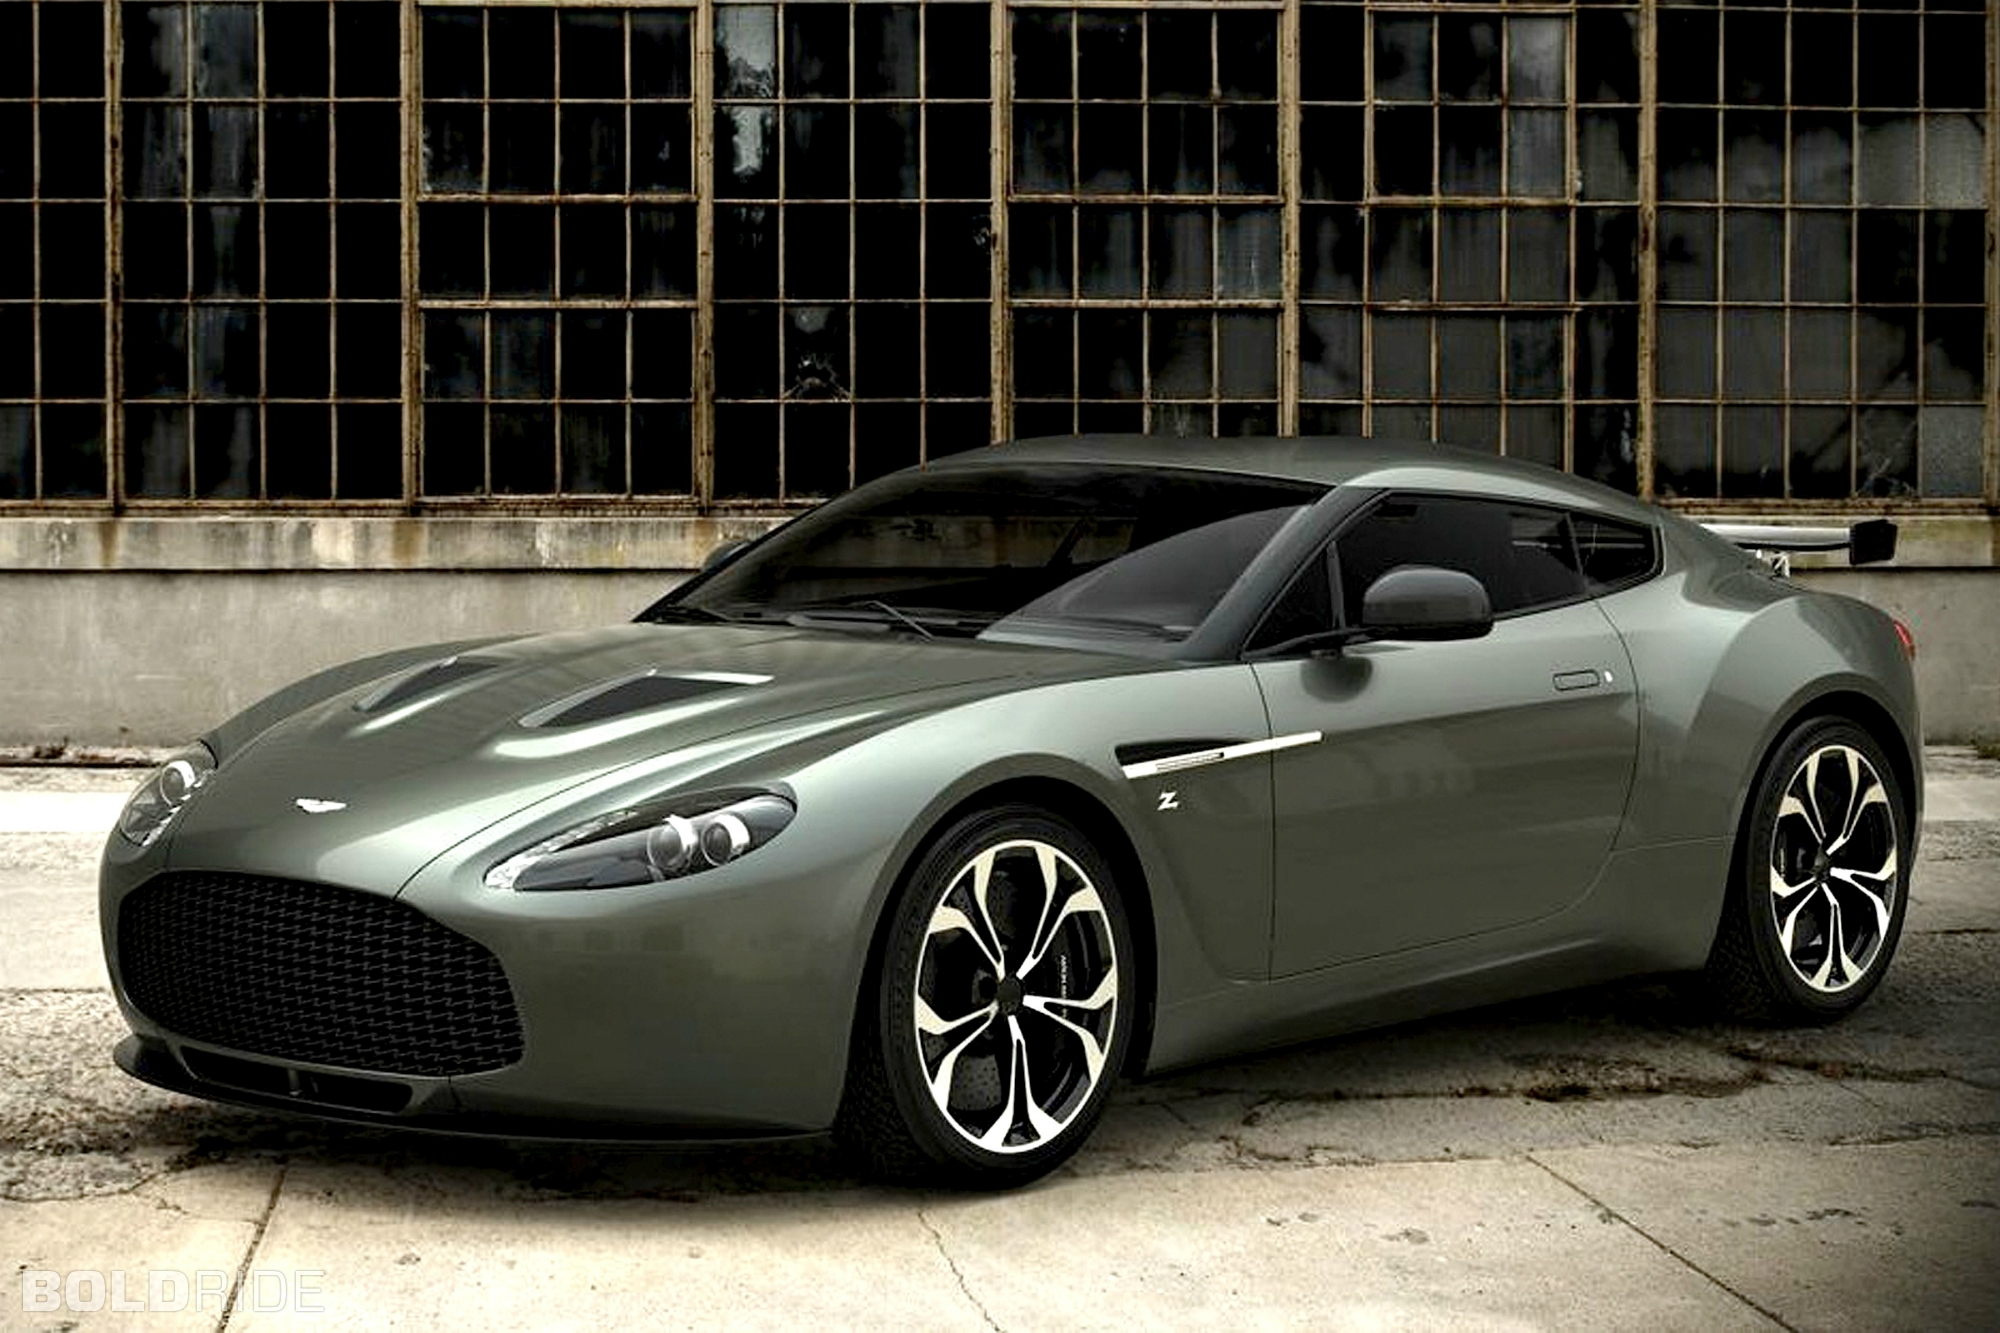 tuning aston martin v12 zagato coupe 2012 online accessories and spare parts for tuning aston. Black Bedroom Furniture Sets. Home Design Ideas